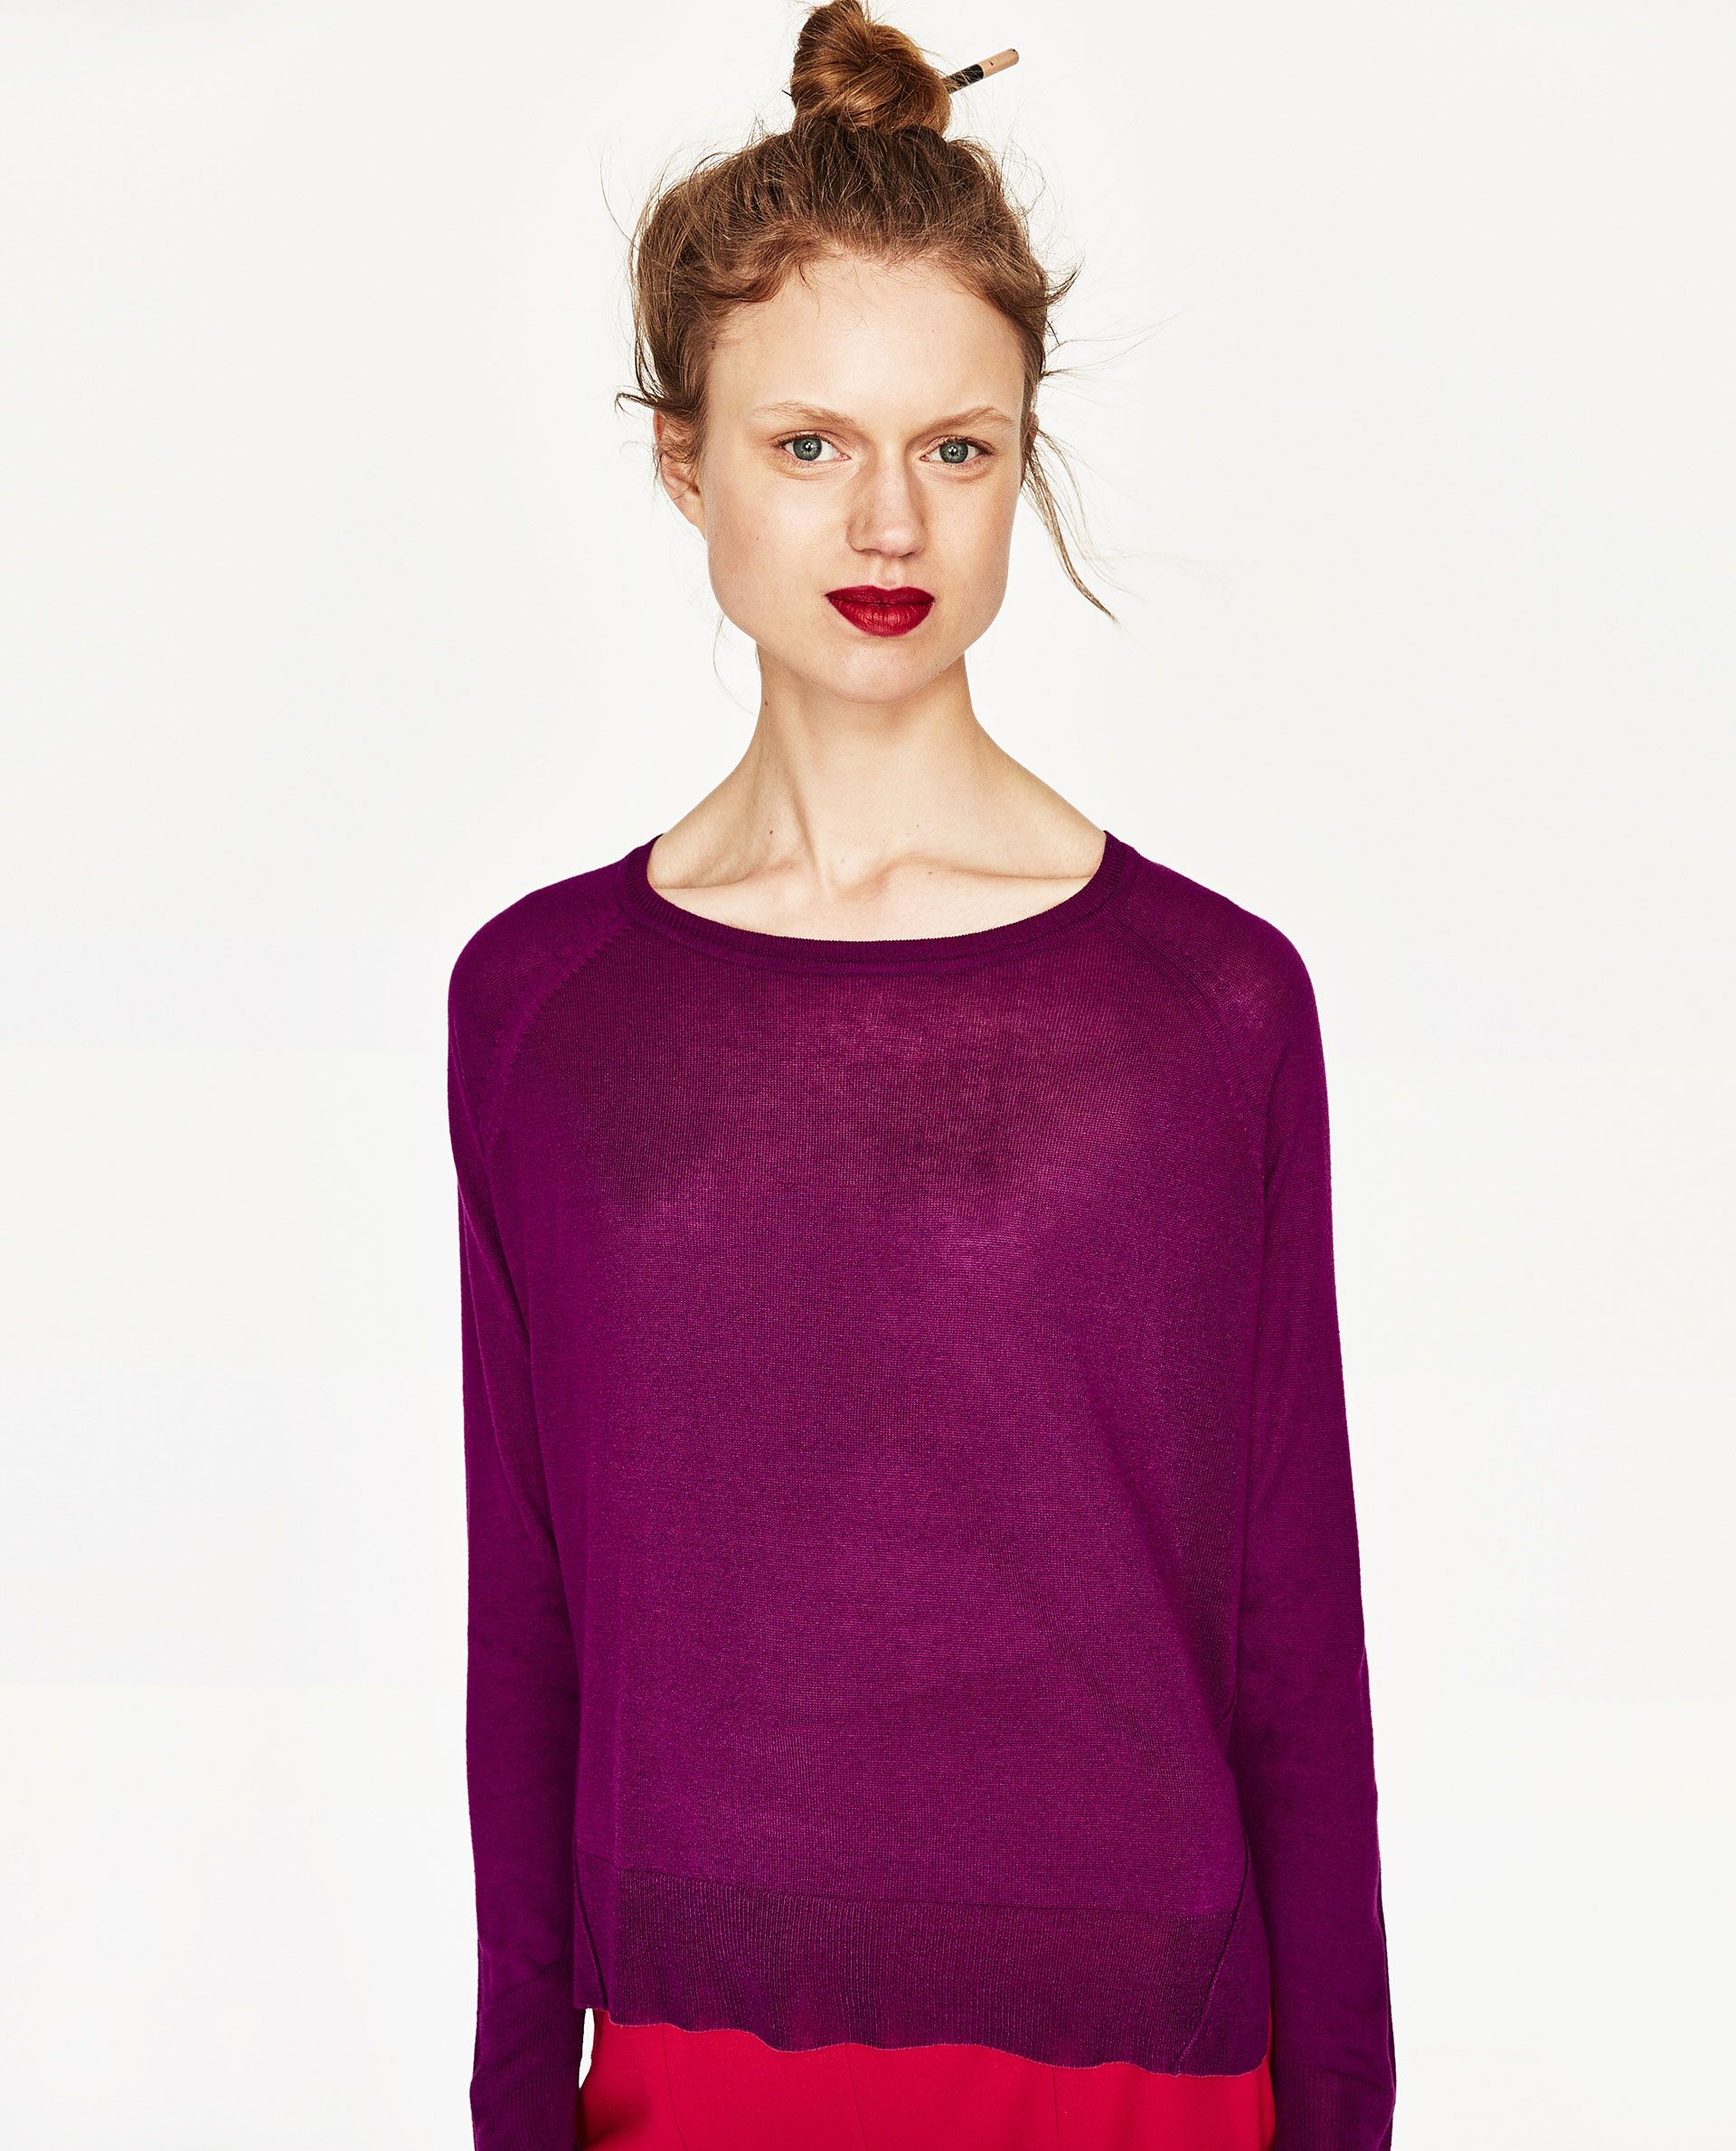 d80188ed88 SWEATER WITH SIDE SLITS DETAILS 1